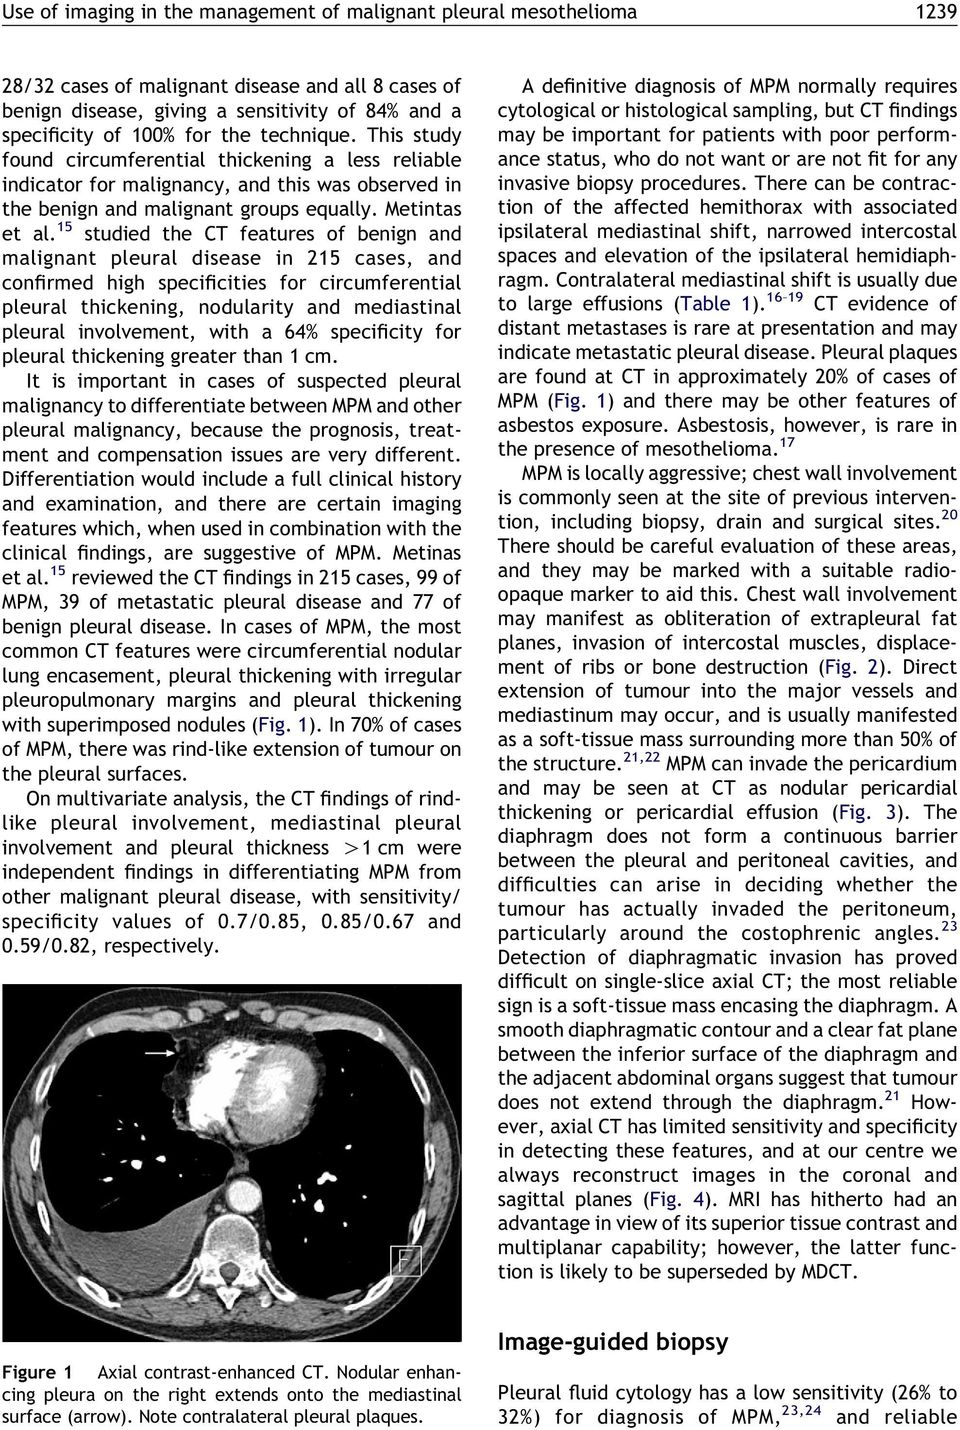 15 studied the CT features of benign and malignant pleural disease in 215 cases, and confirmed high specificities for circumferential pleural thickening, nodularity and mediastinal pleural